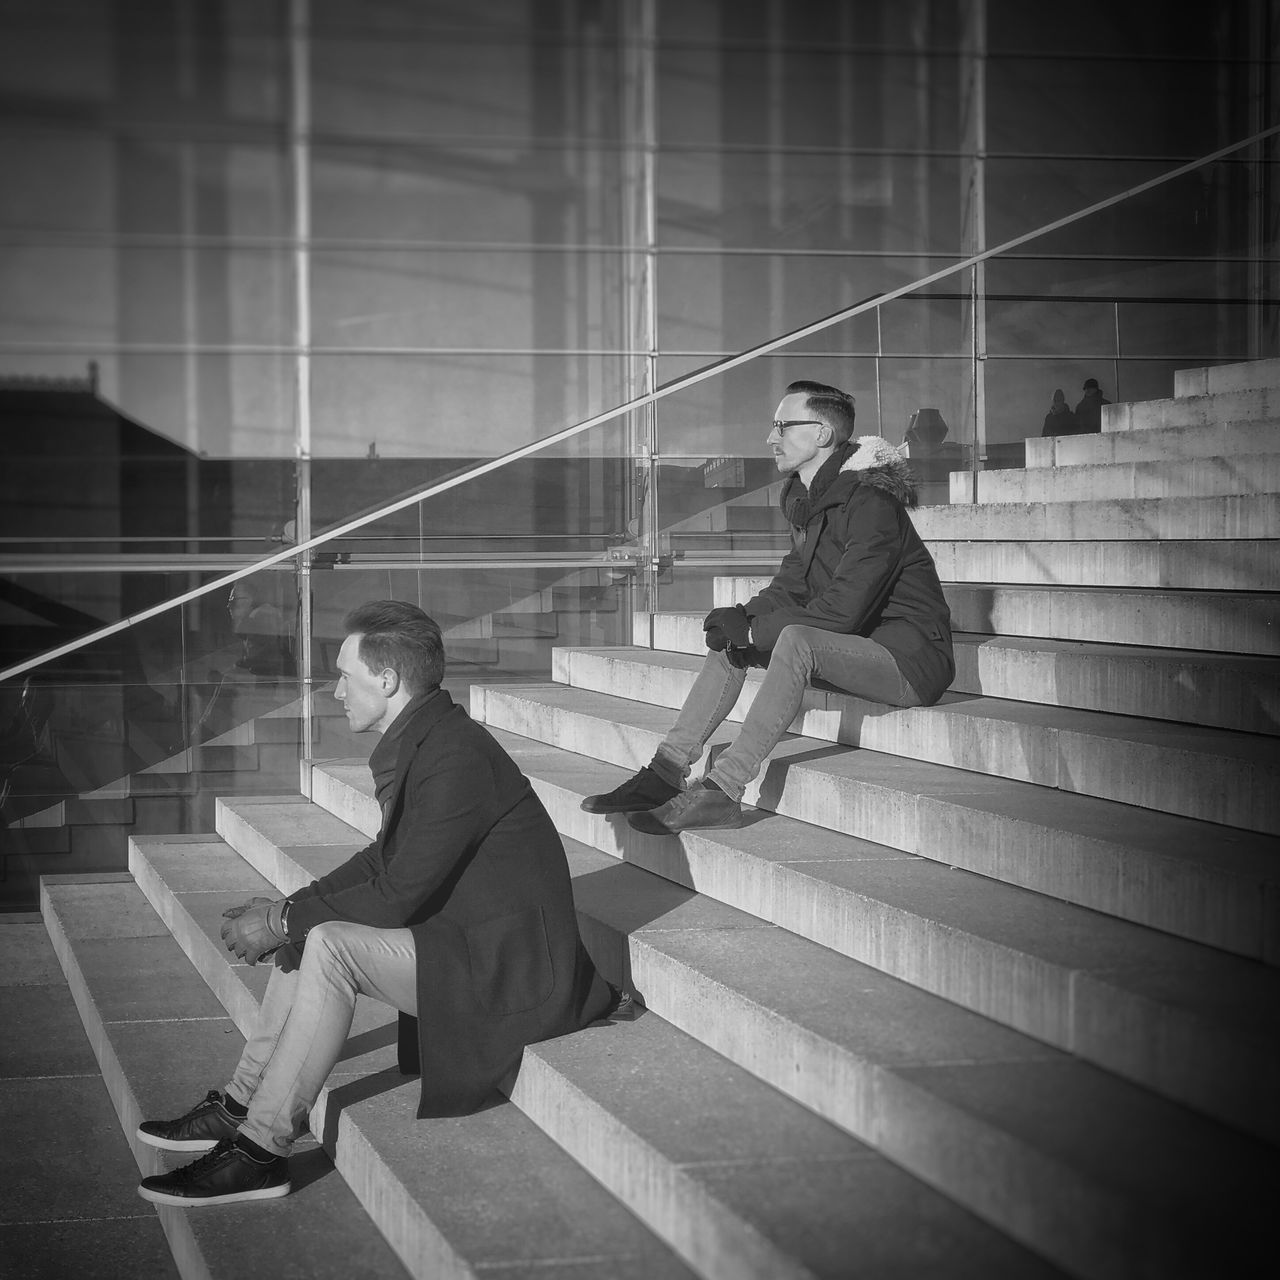 Fashionable Men Sitting On Steps Against Modern Building